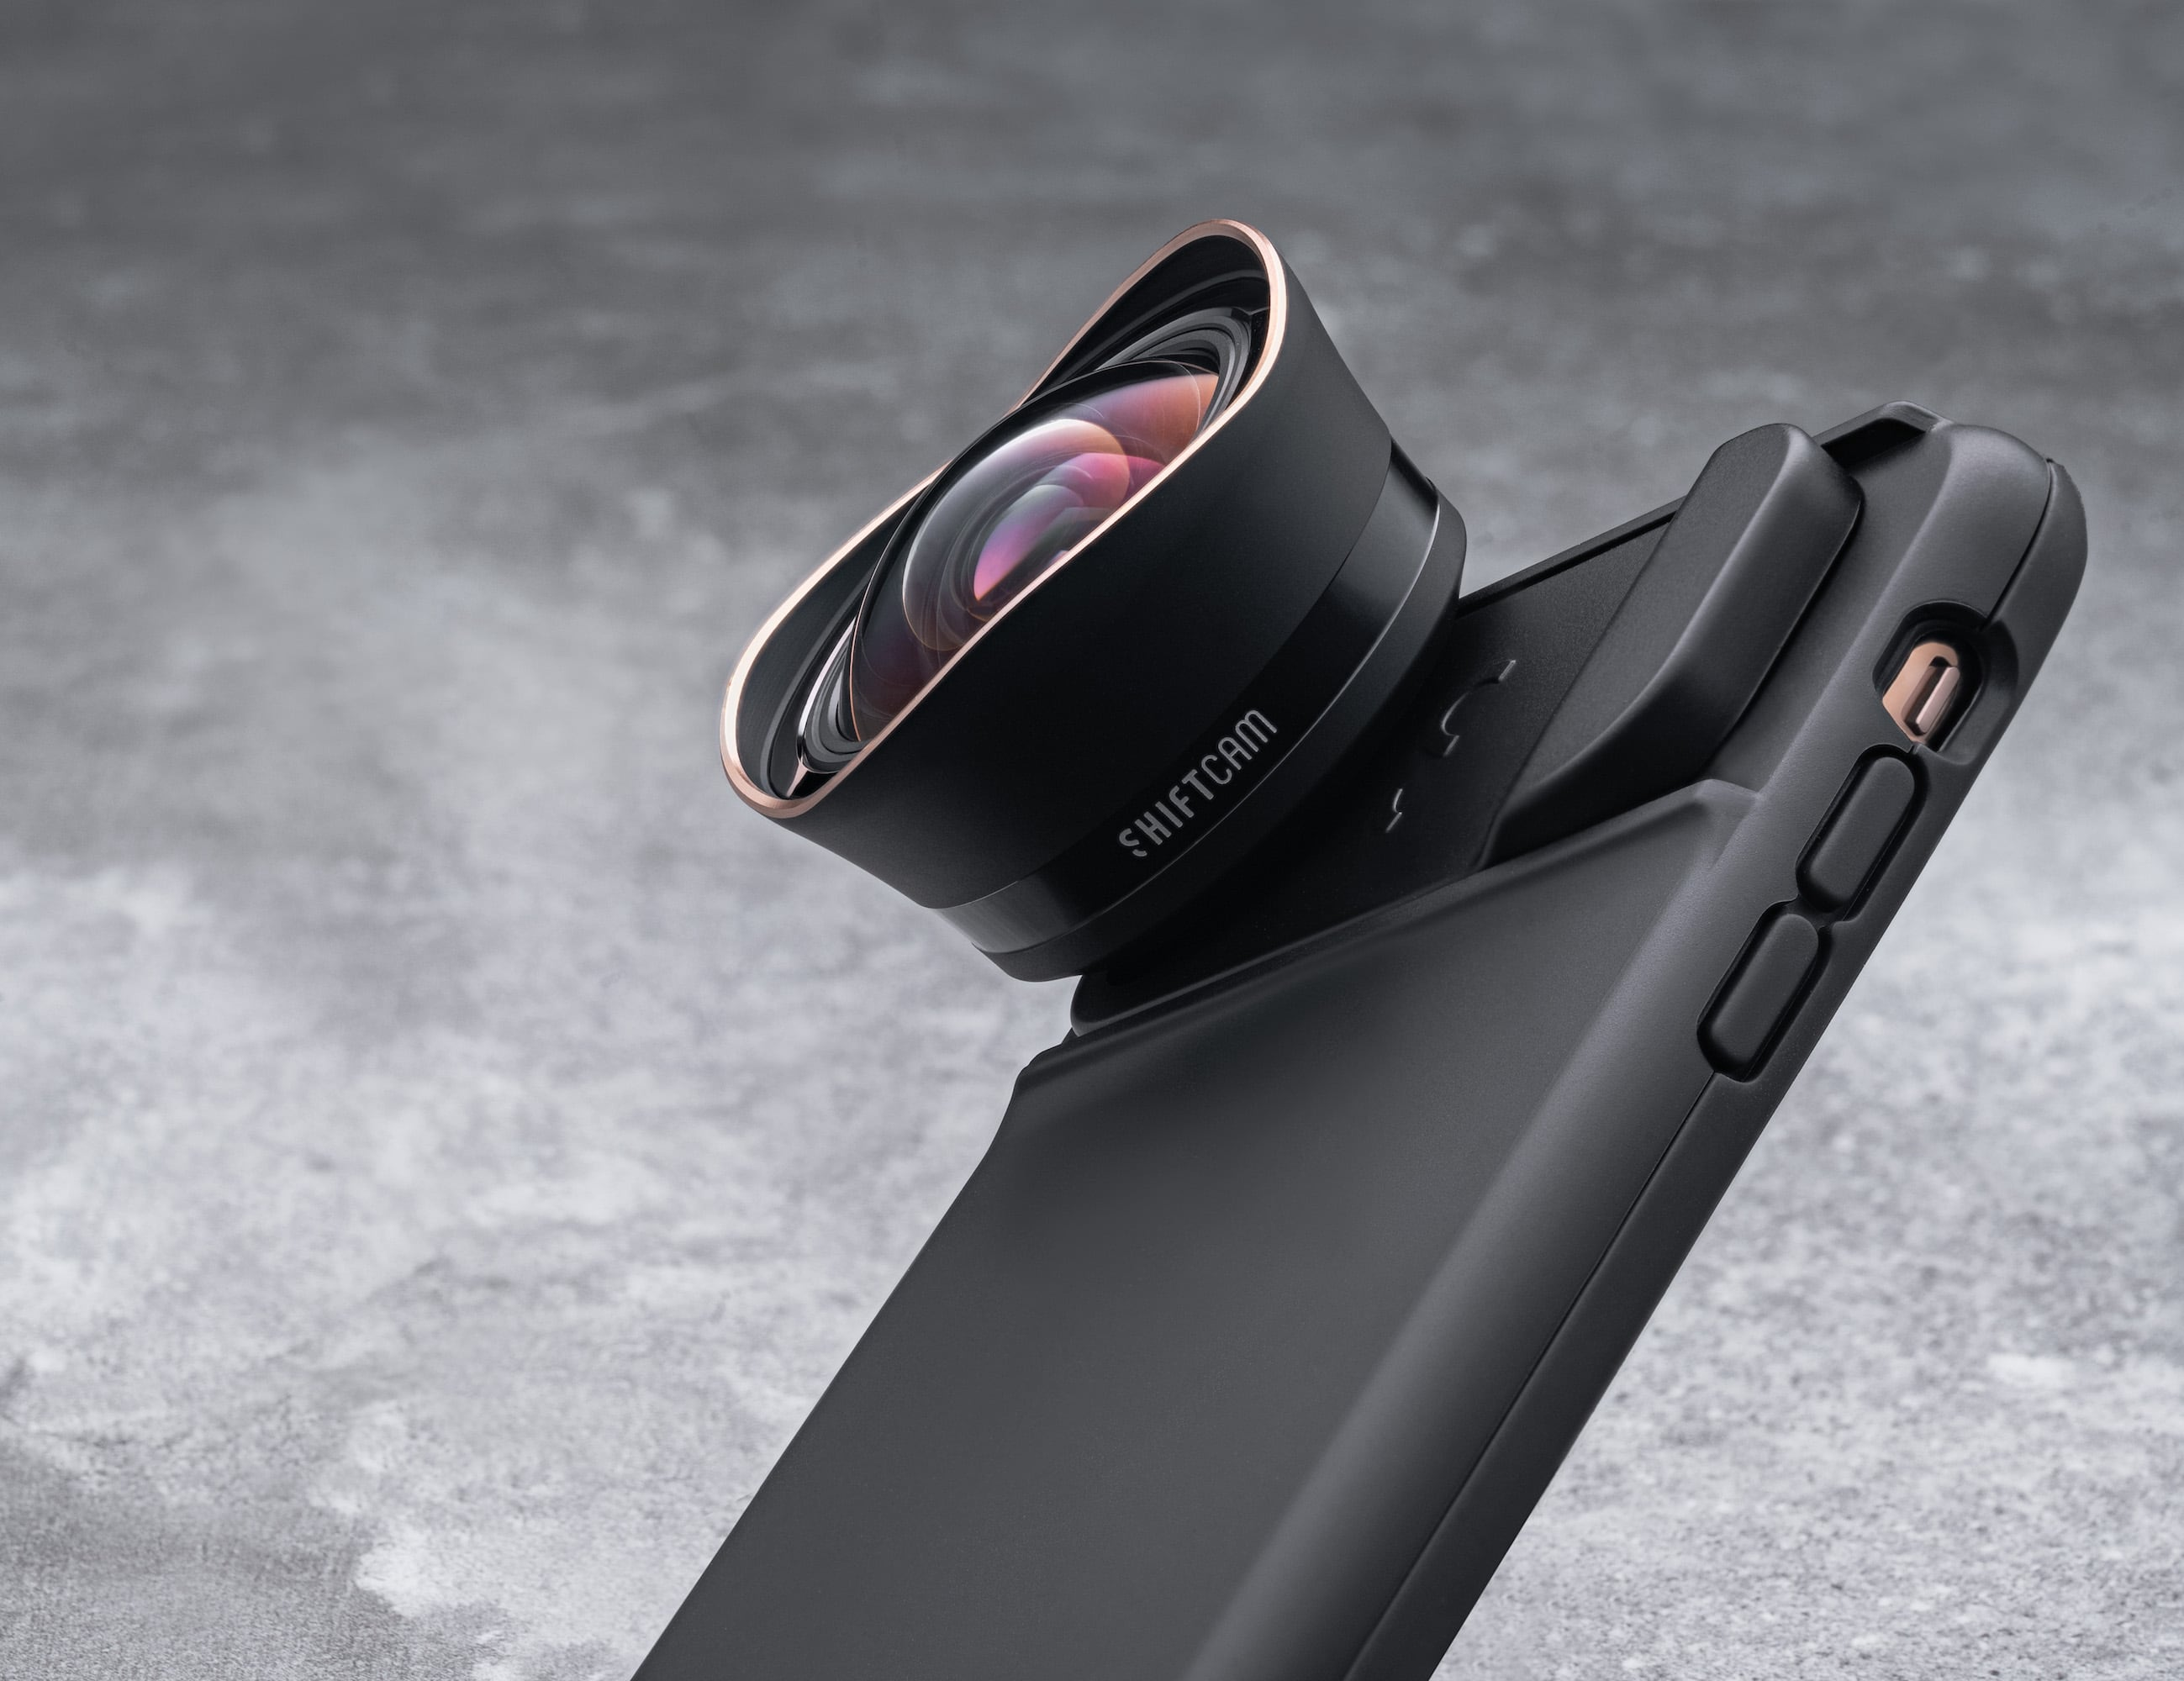 ShiftCam 2.0 12mm Ultra Wide Aspherical Smartphone Lens puts it all into perspective